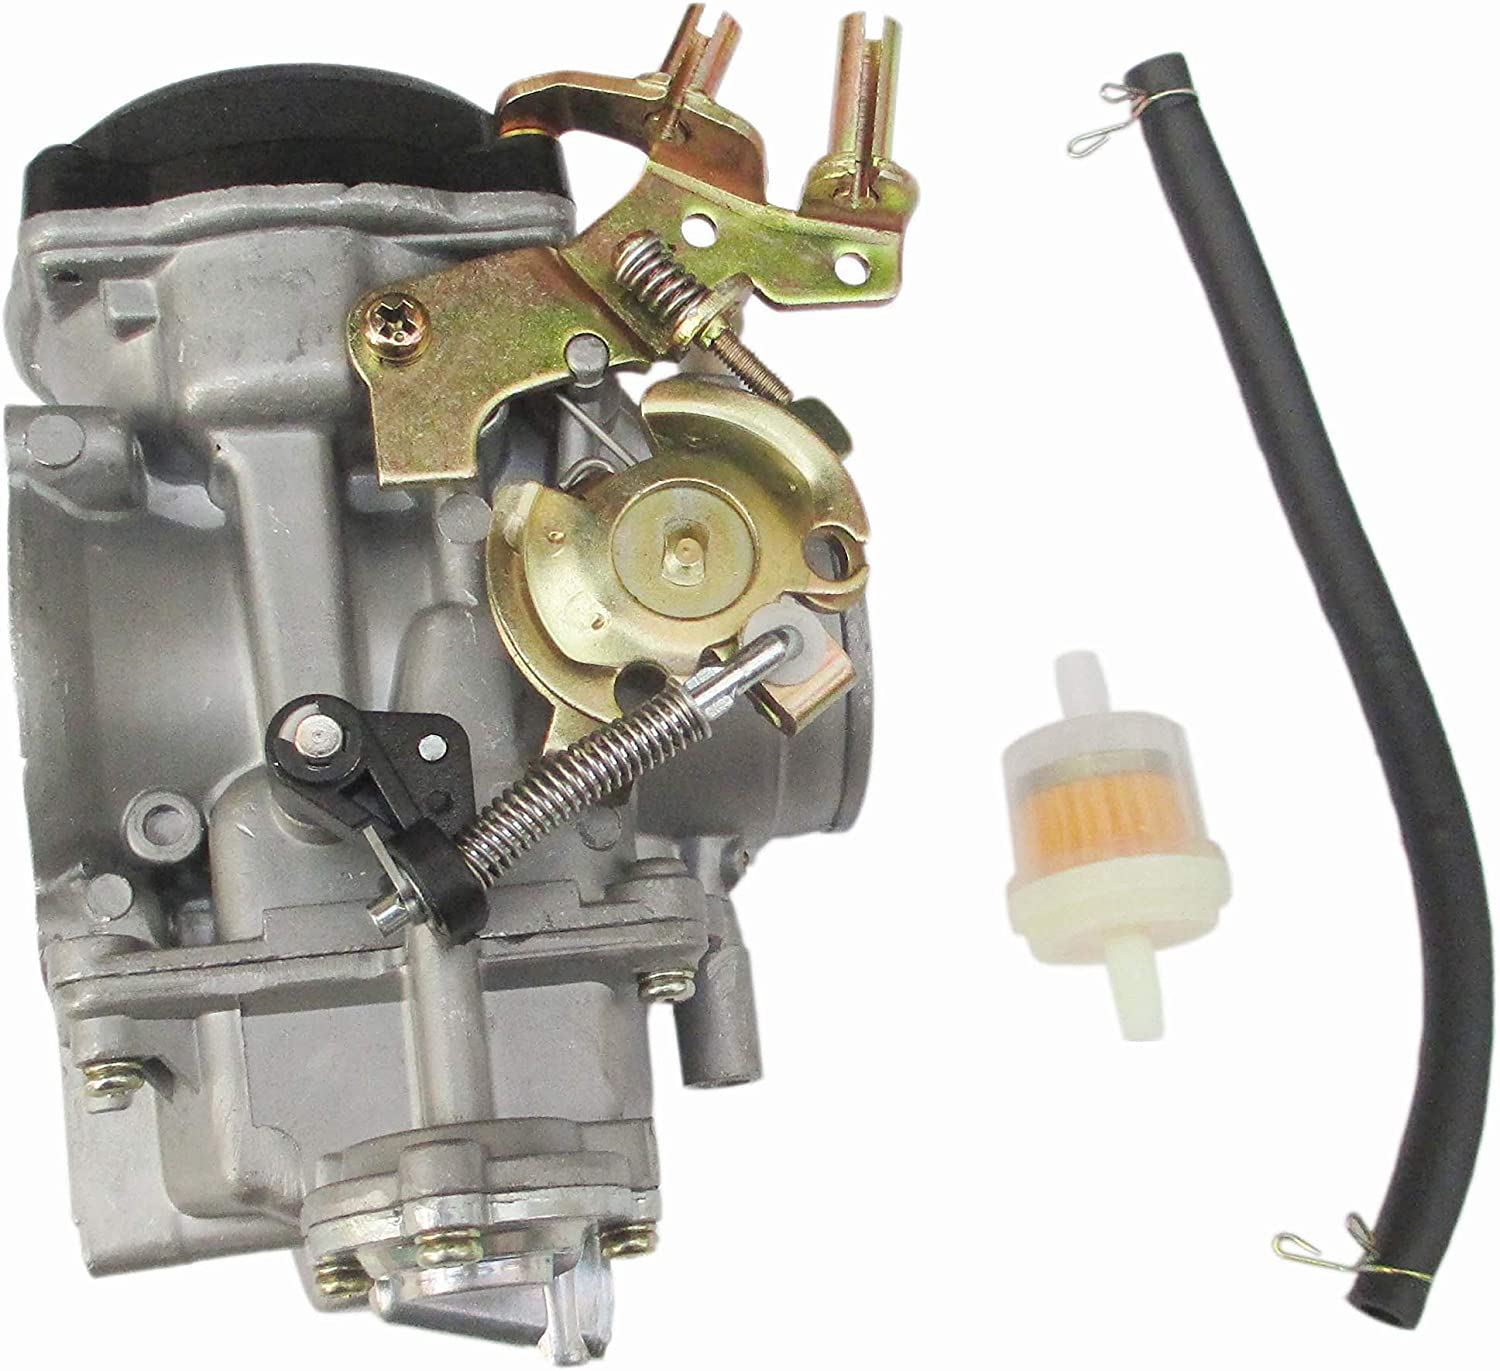 Brand New High Performance CV 40mm Carburetor For Harley-Davidson 27421-99C 27490-04 27465-04